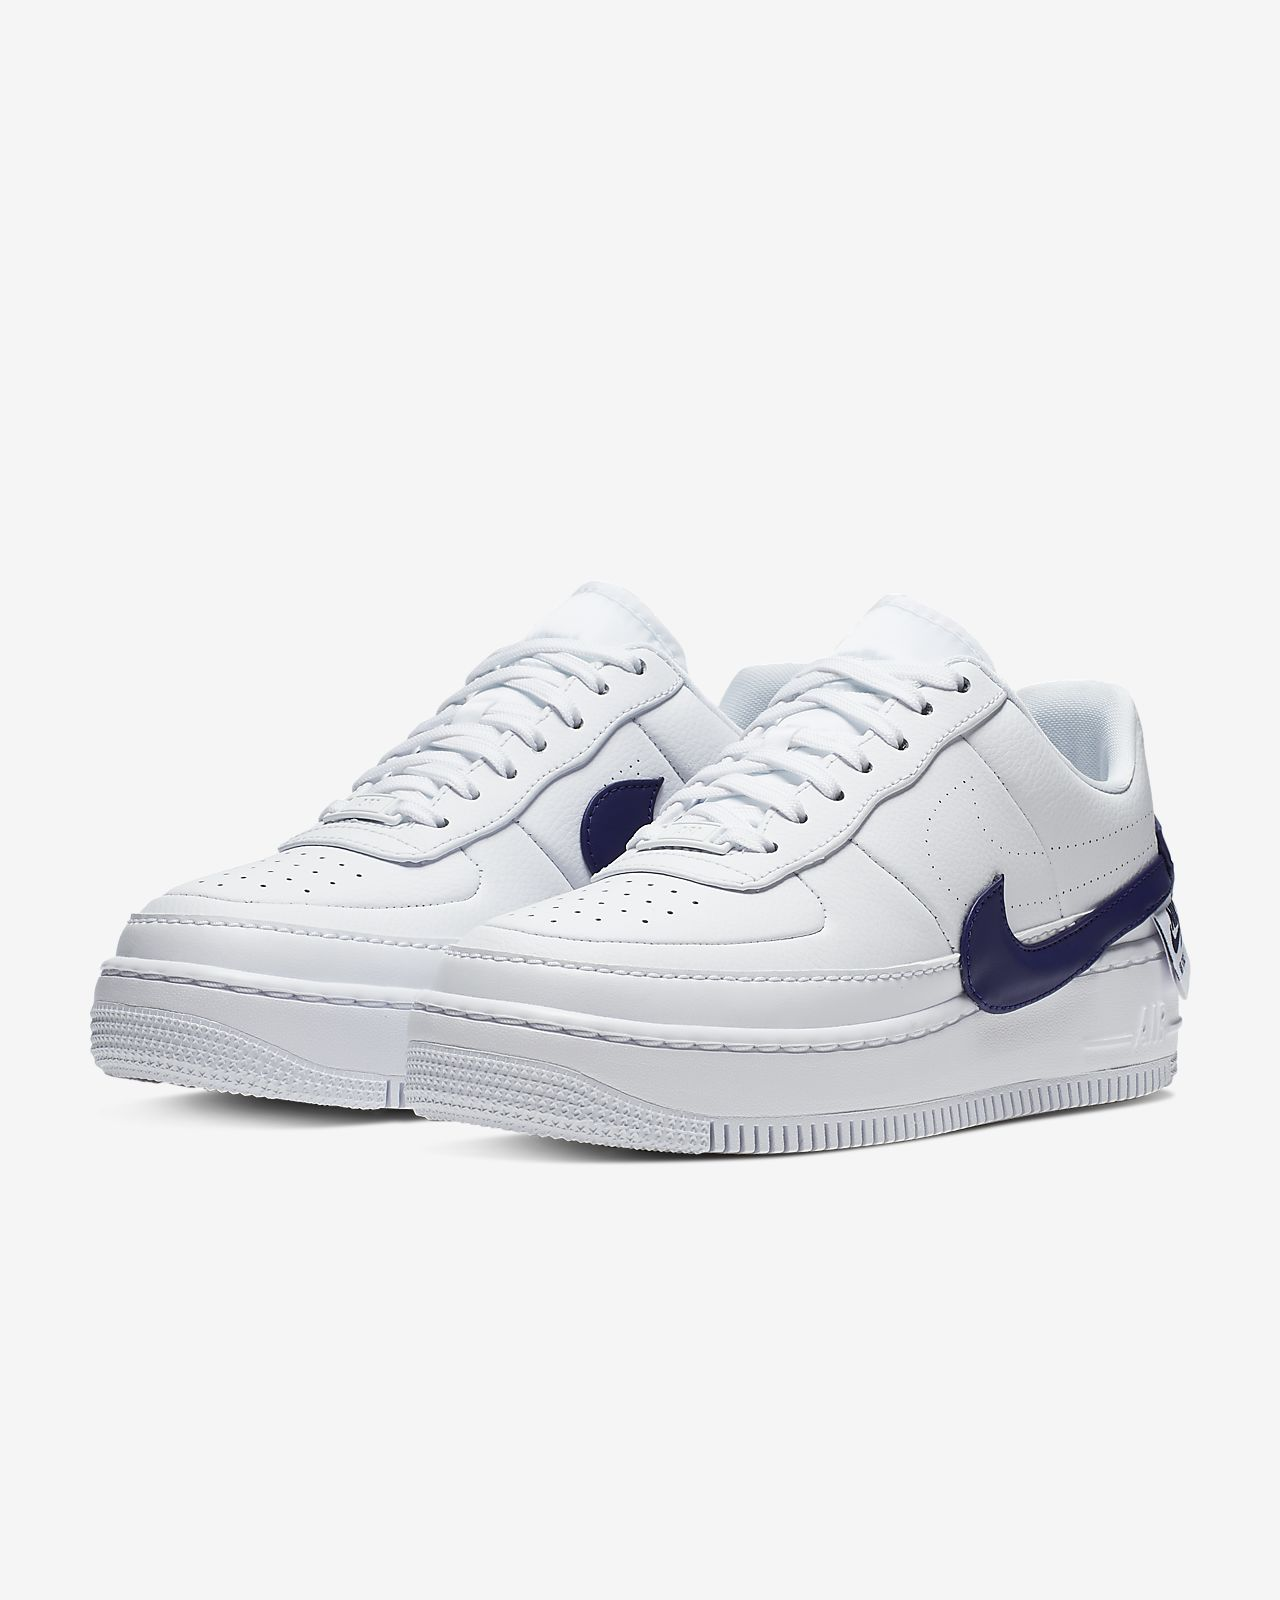 new arrival 82216 1ebf9 ... Nike Air Force 1 Jester XX Shoe